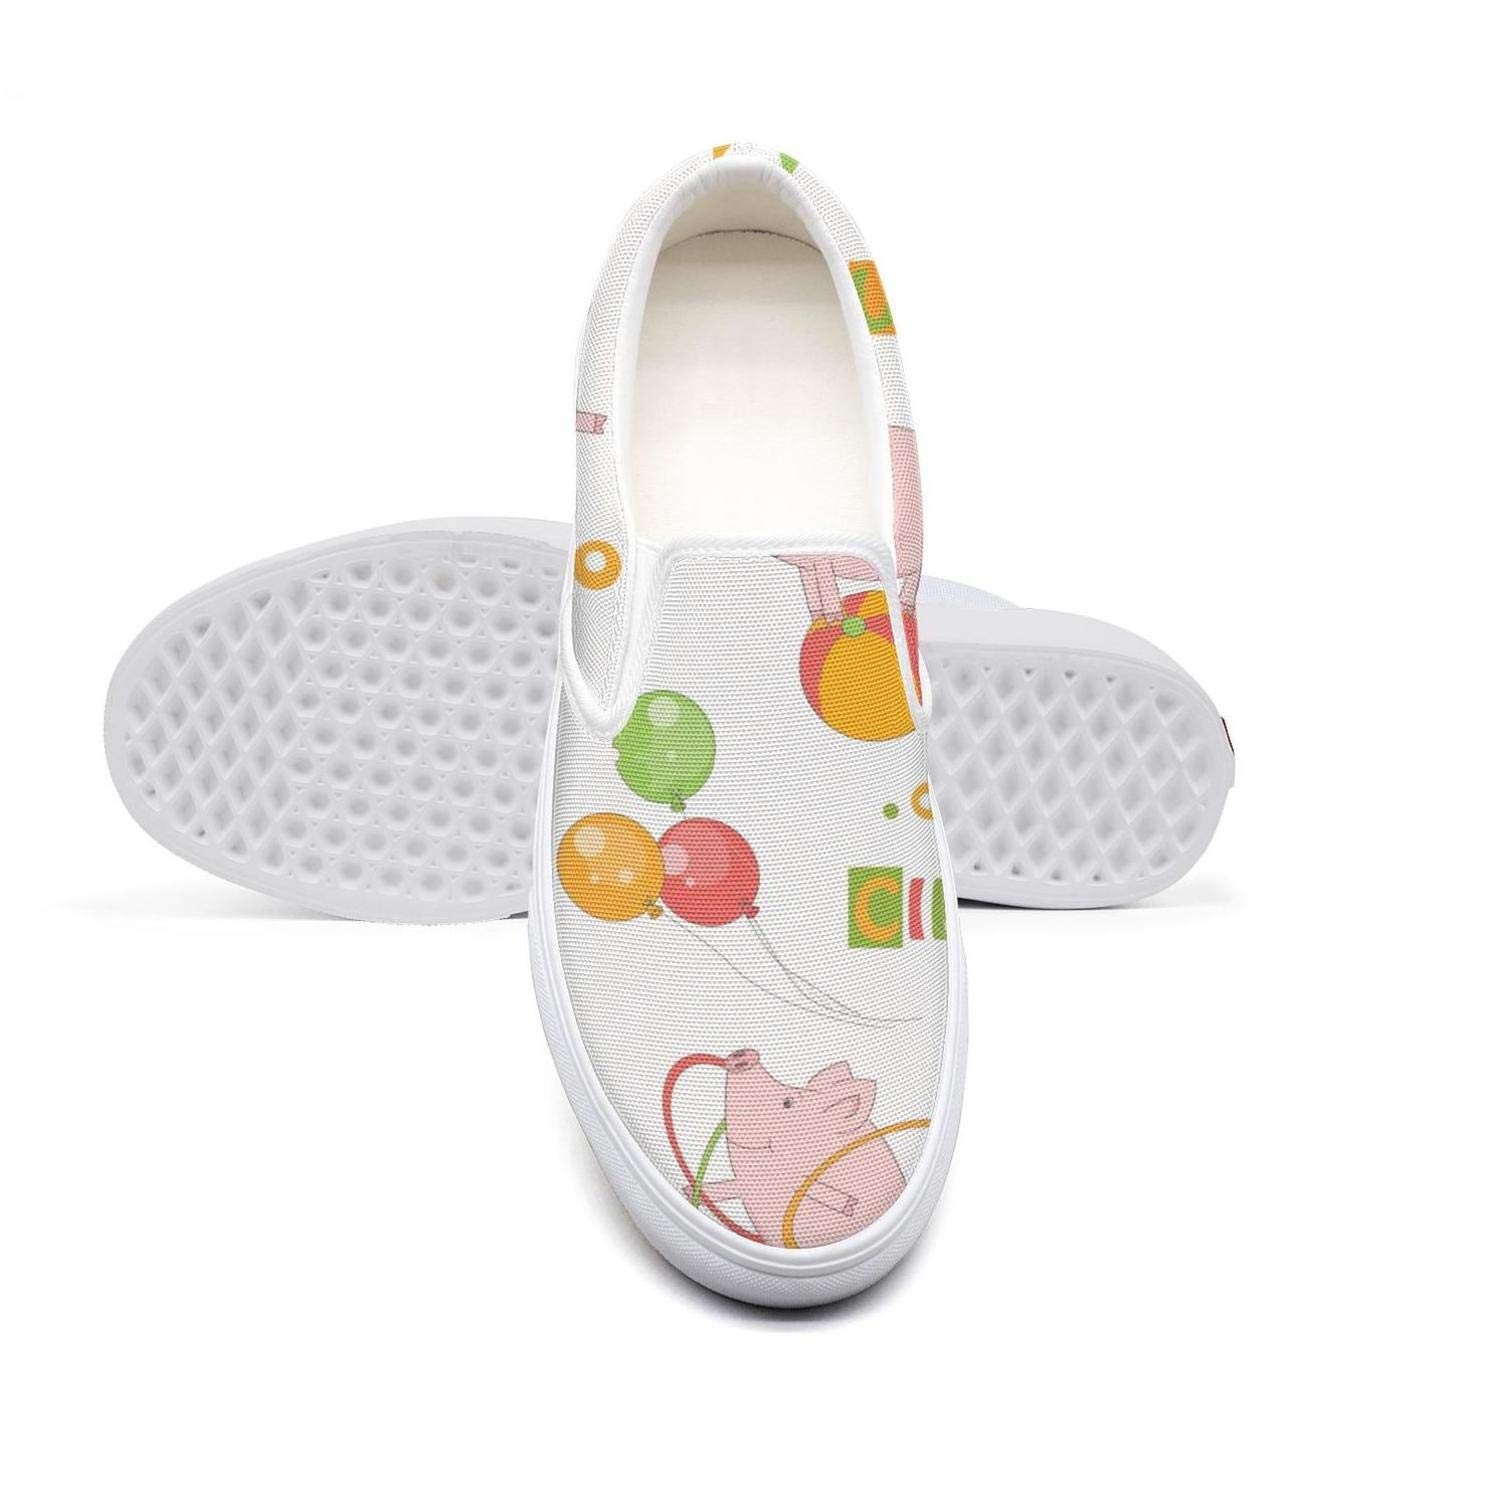 Baby Colorful Cute Pig Playing with Ball and Hula Hoop Ride A Bicycle Womens White Solesperfect Classic Sneaker Round Toe Canvas Slip-On Shoes